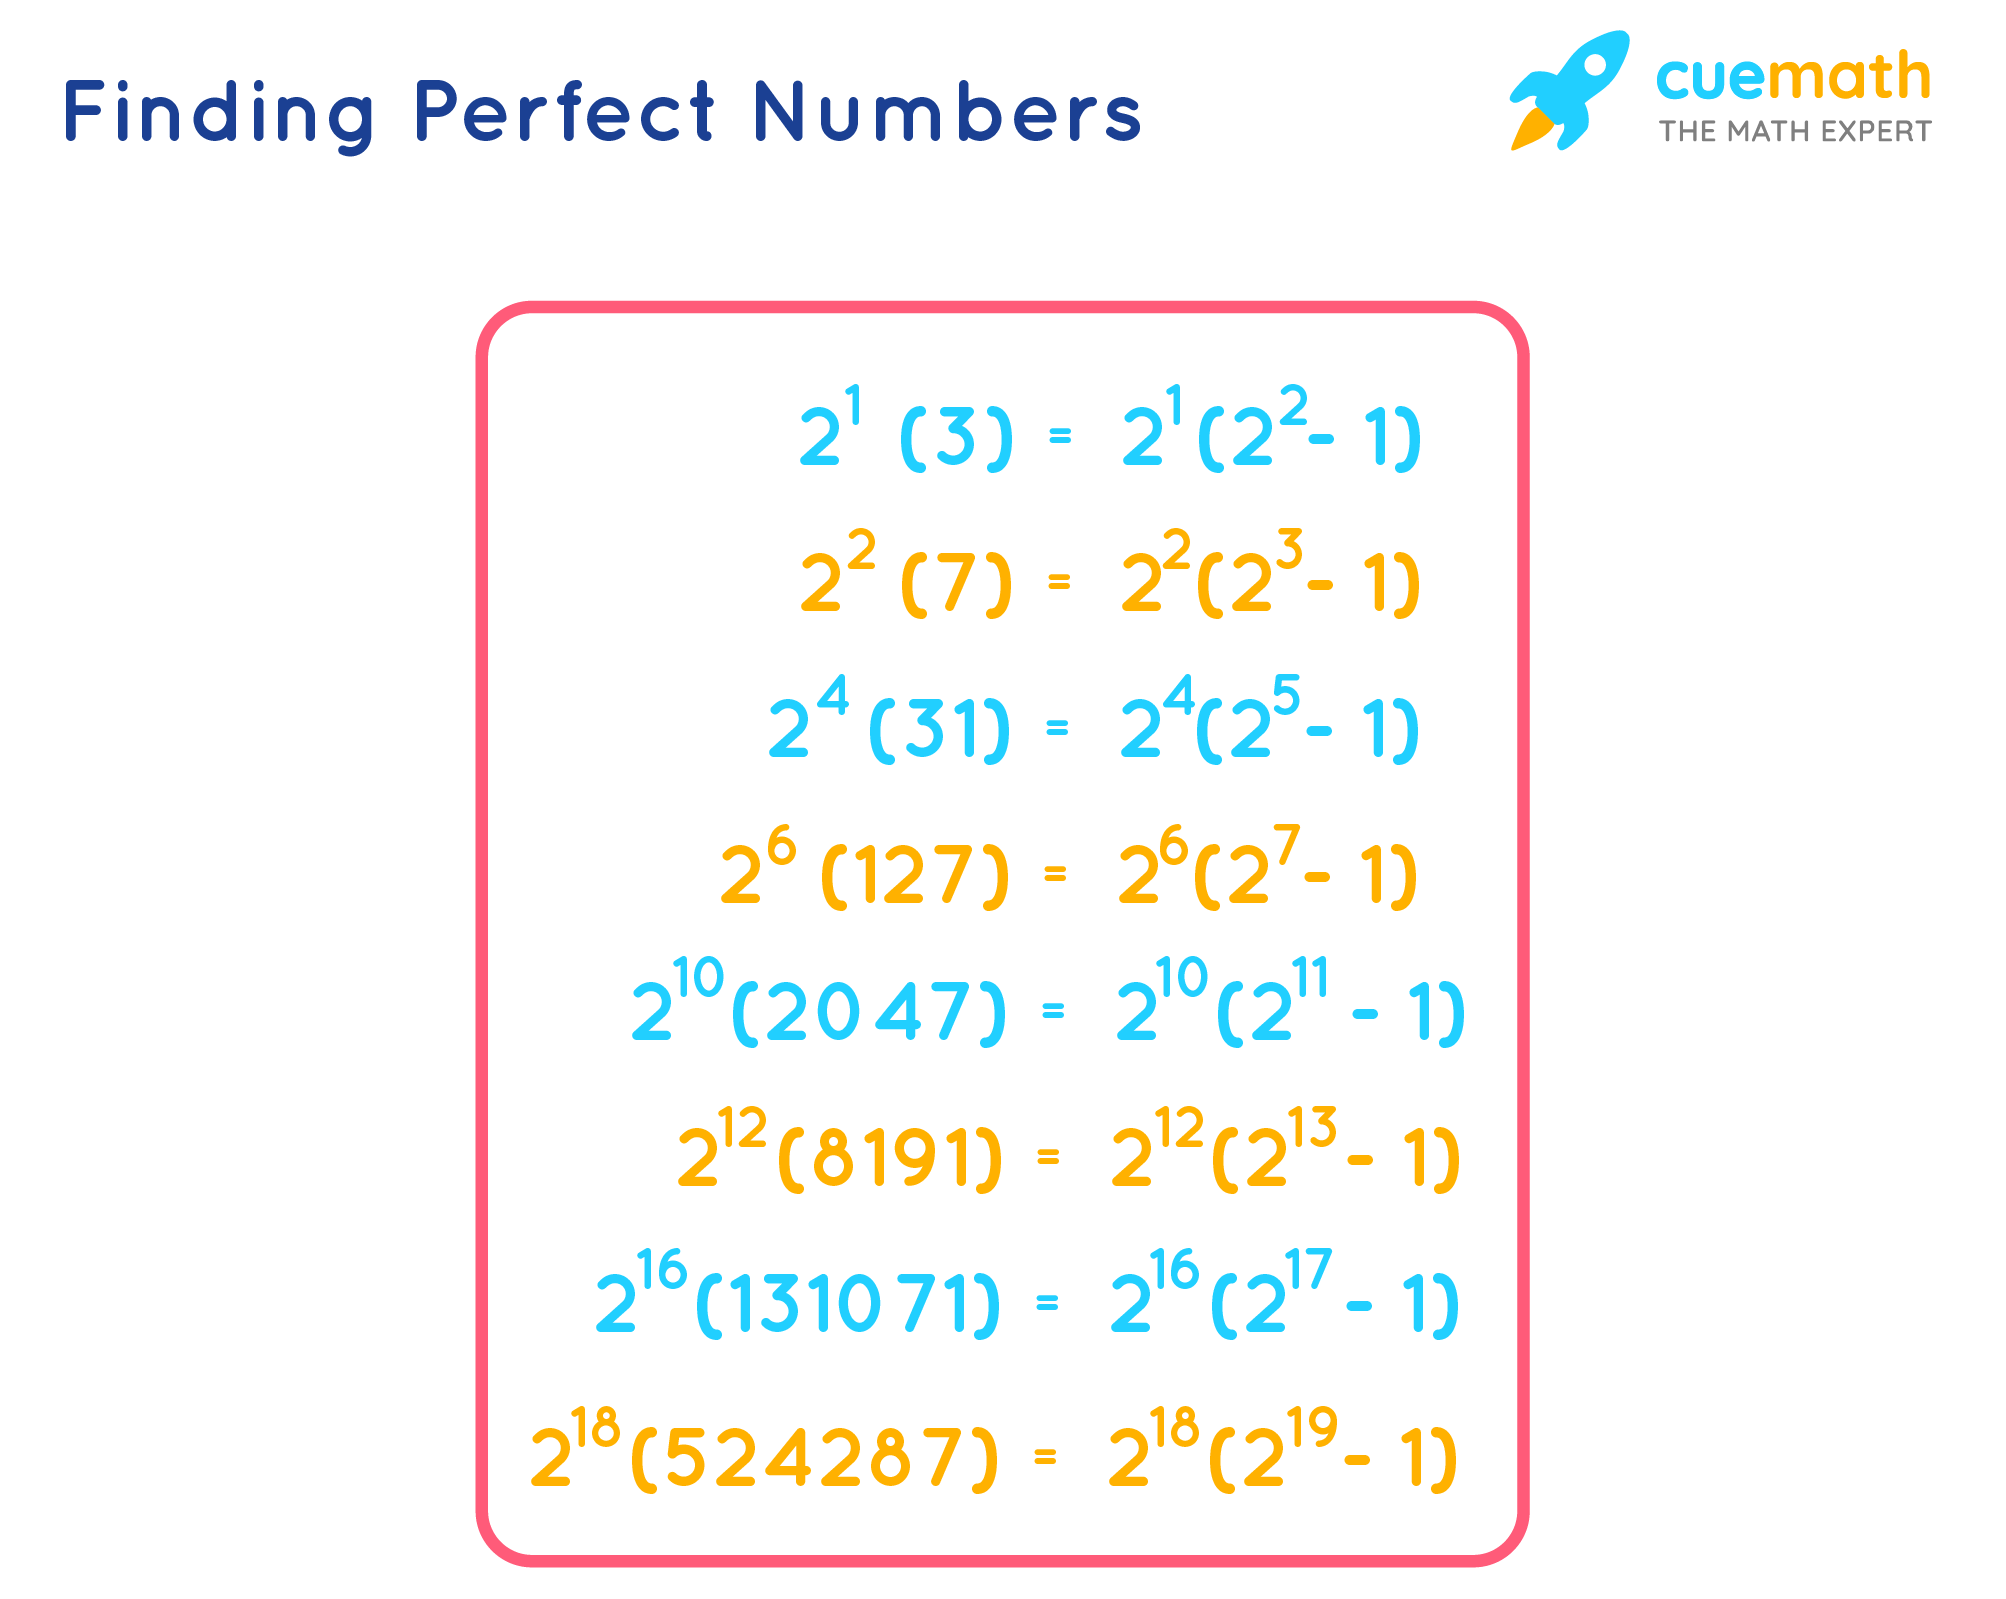 Finding Perfect Numbers